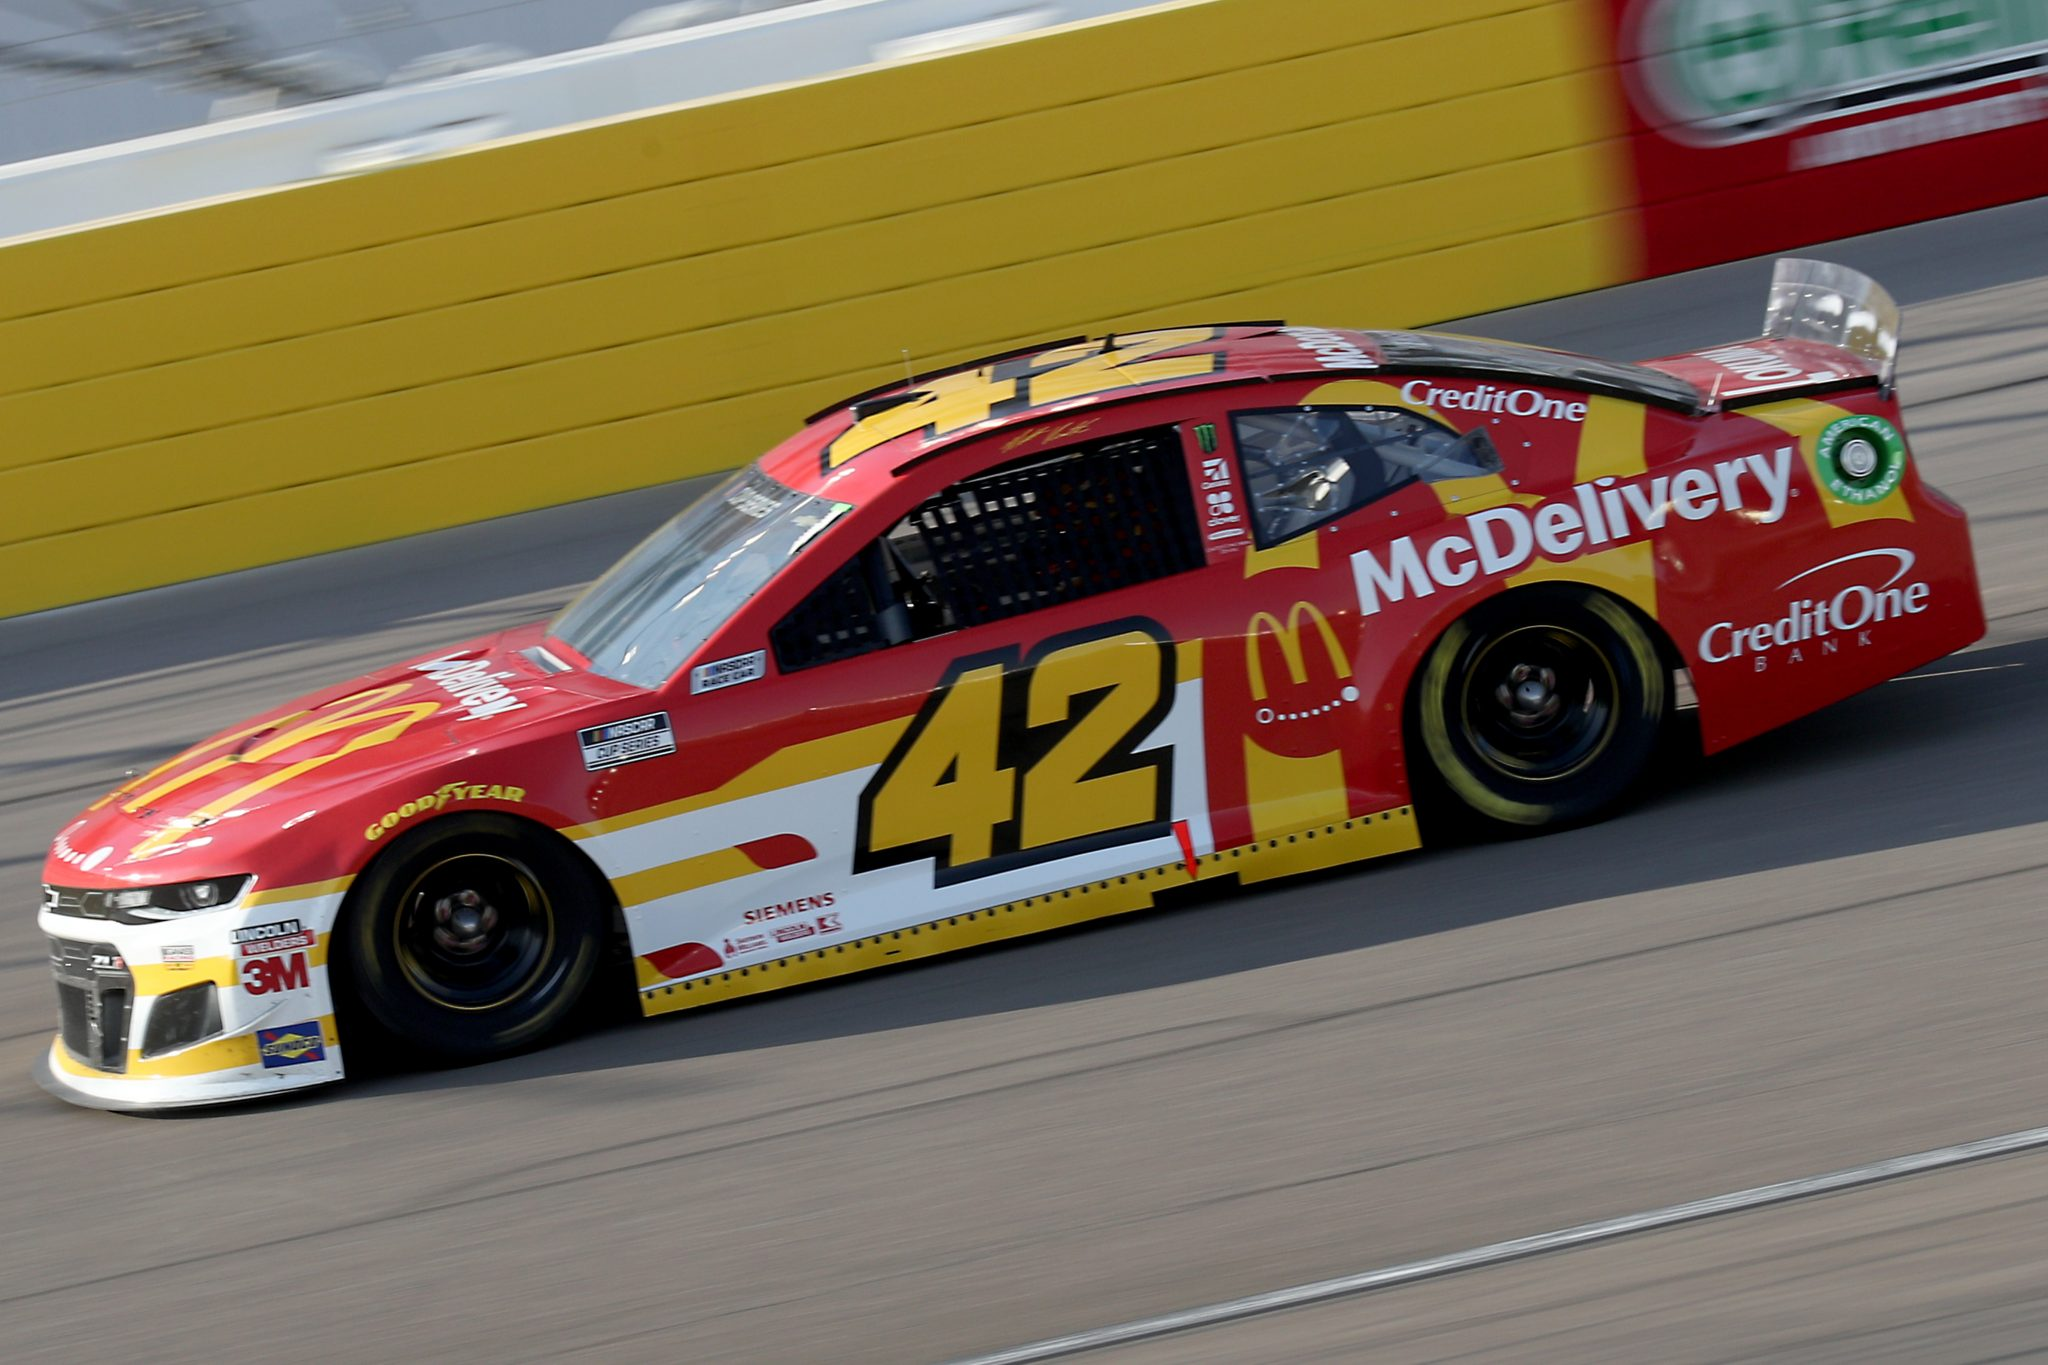 LAS VEGAS, NEVADA - SEPTEMBER 27: Matt Kenseth, driver of the #42 McDonald's Chevrolet, drives during the NASCAR Cup Series South Point 400 at Las Vegas Motor Speedway on September 27, 2020 in Las Vegas, Nevada. (Photo by Chris Graythen/Getty Images) | Getty Images